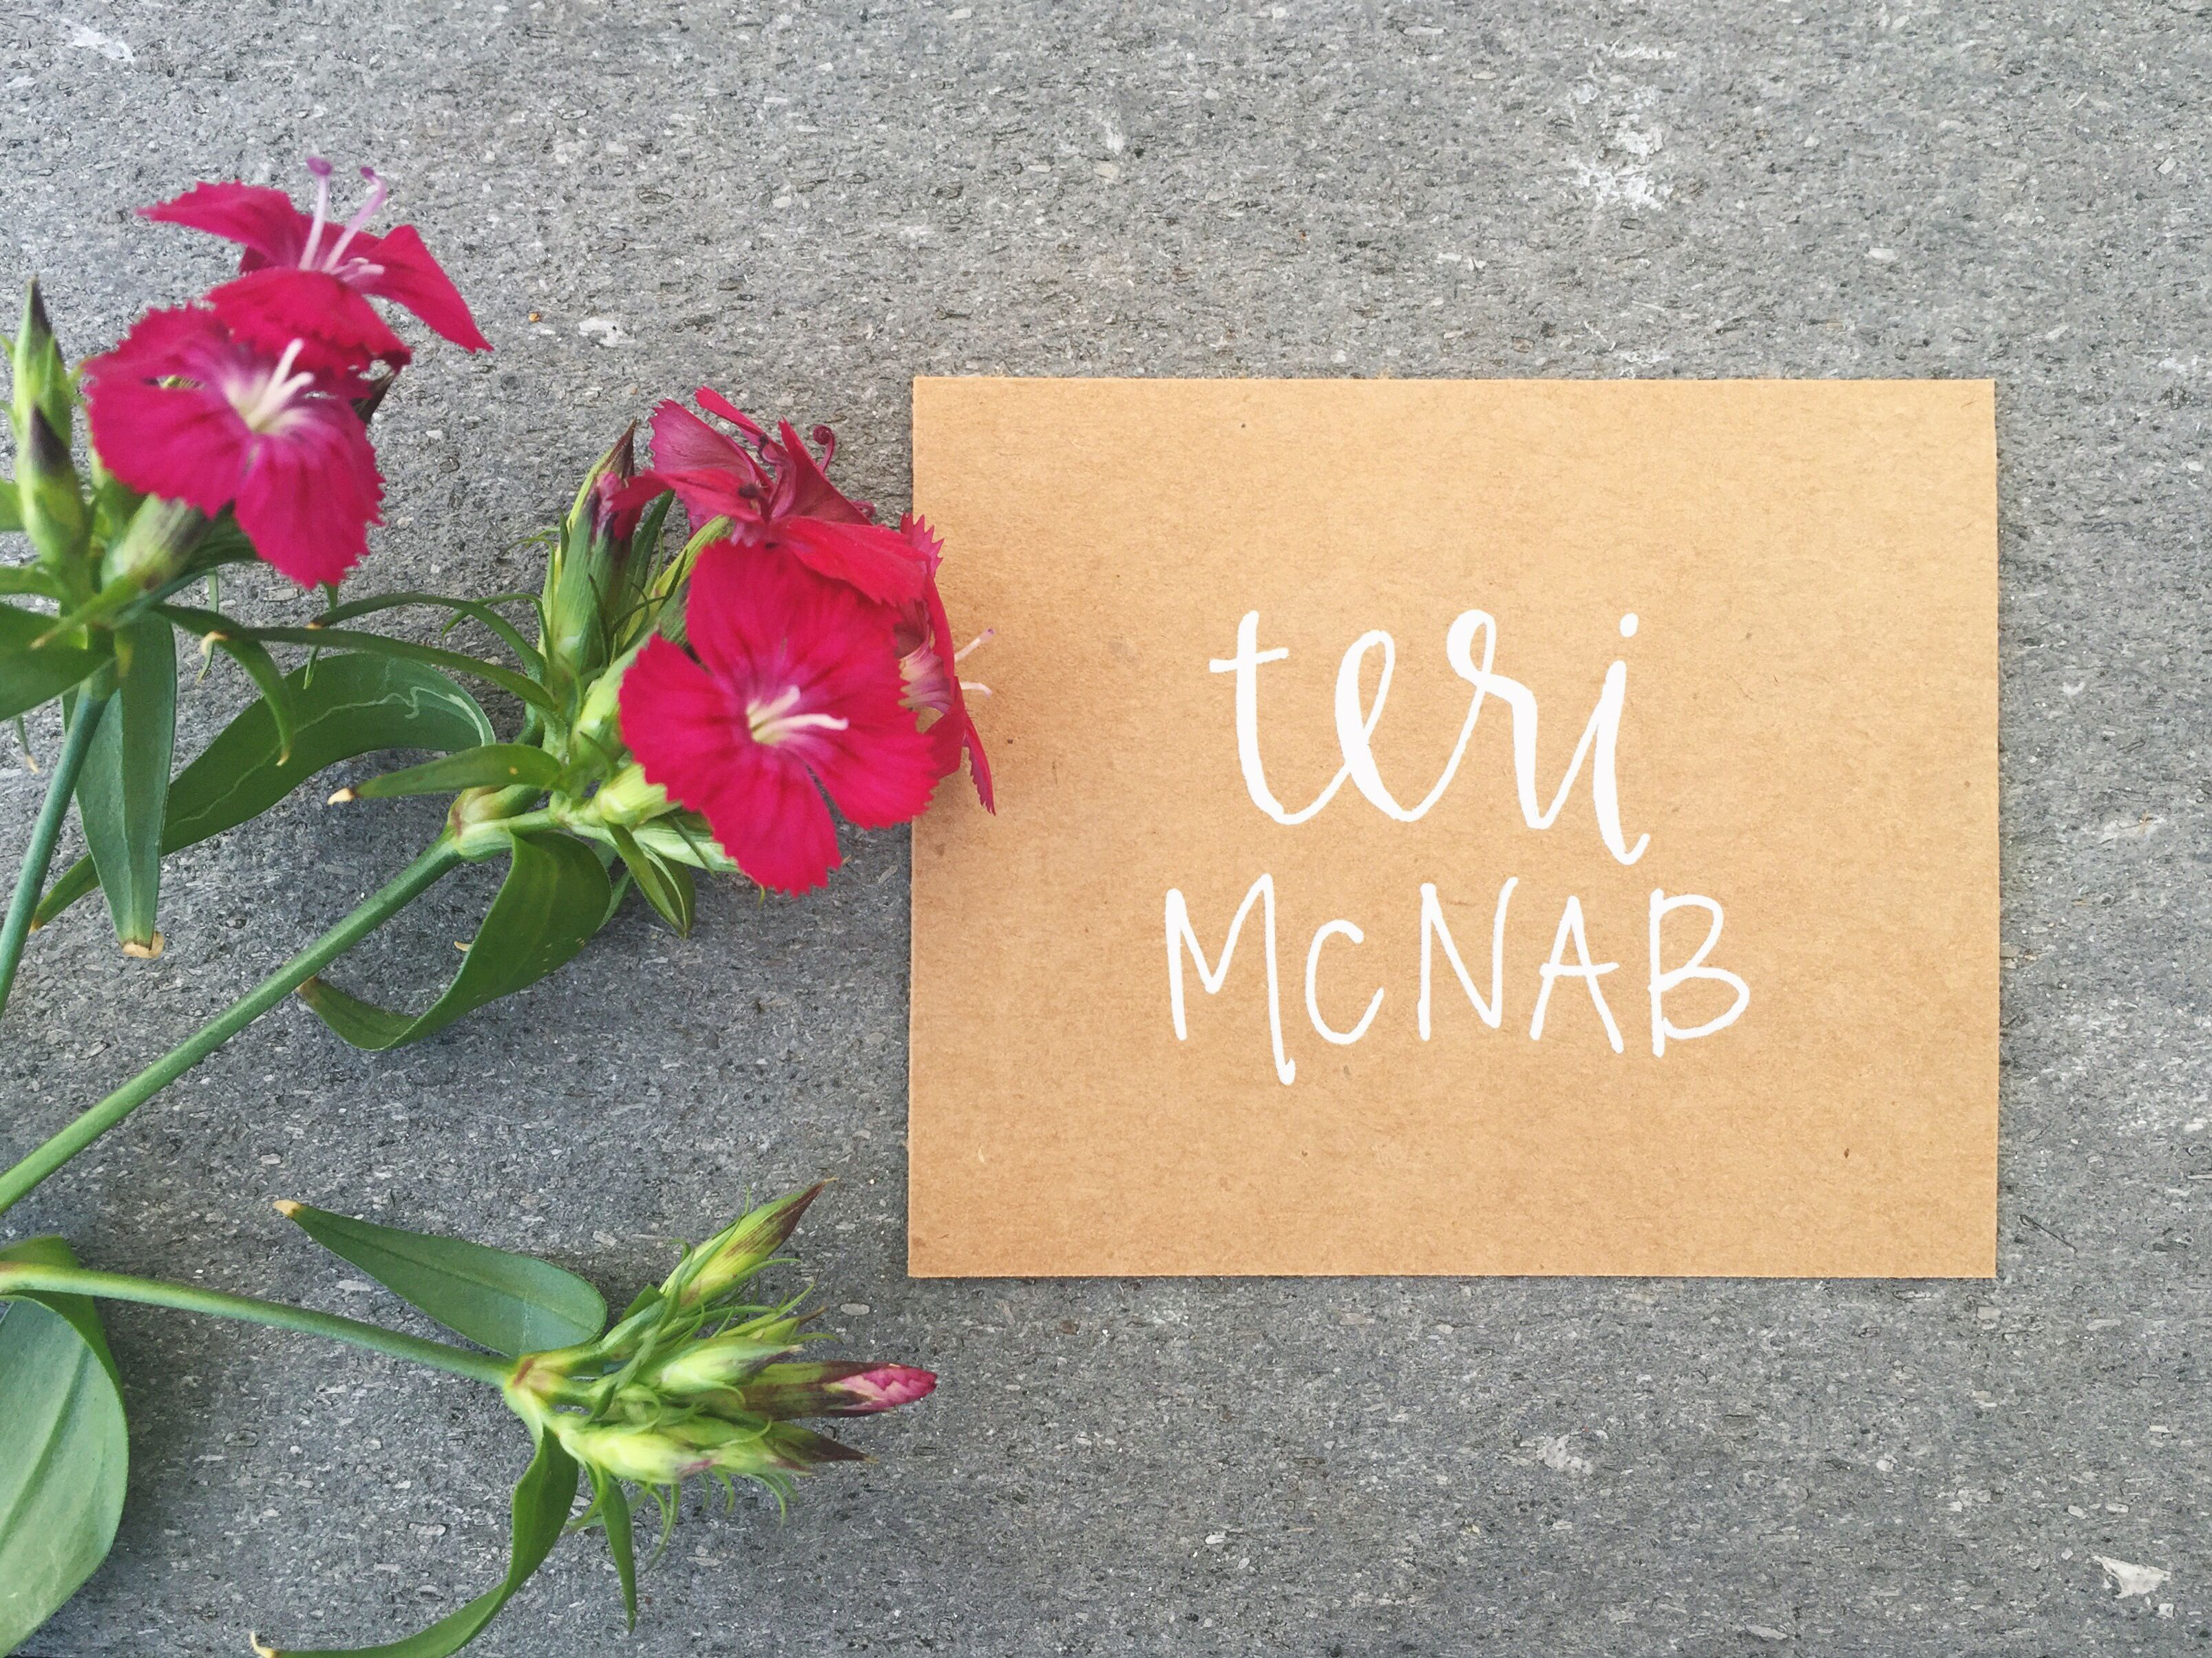 Dinner Party Name Ideas Part - 50: PLACE CARD WEDDING DECOR IDEAS || Wedding Place Cards - Tent Fold - Escort  Card - Black Calligraphy With Kraft Paper - Bride Groom - Dinner Party -u2026